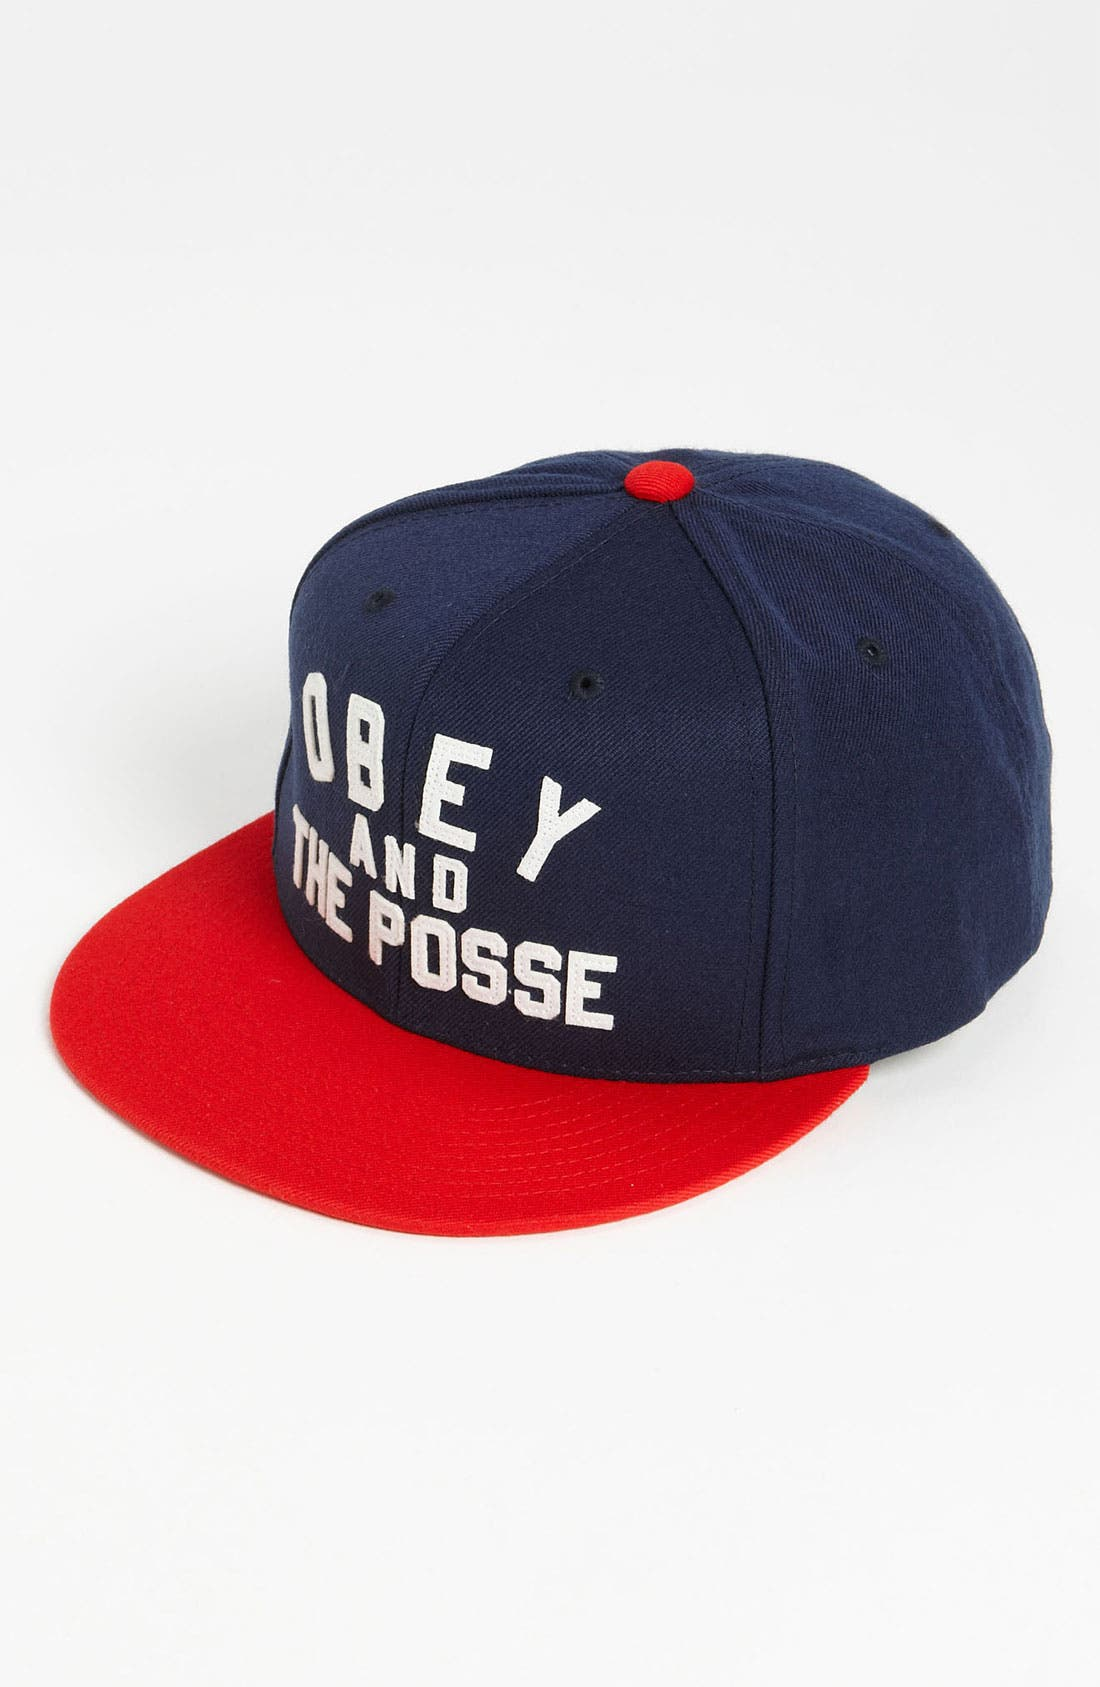 Main Image - Obey 'Obey And The Posse' Snapback Baseball Cap